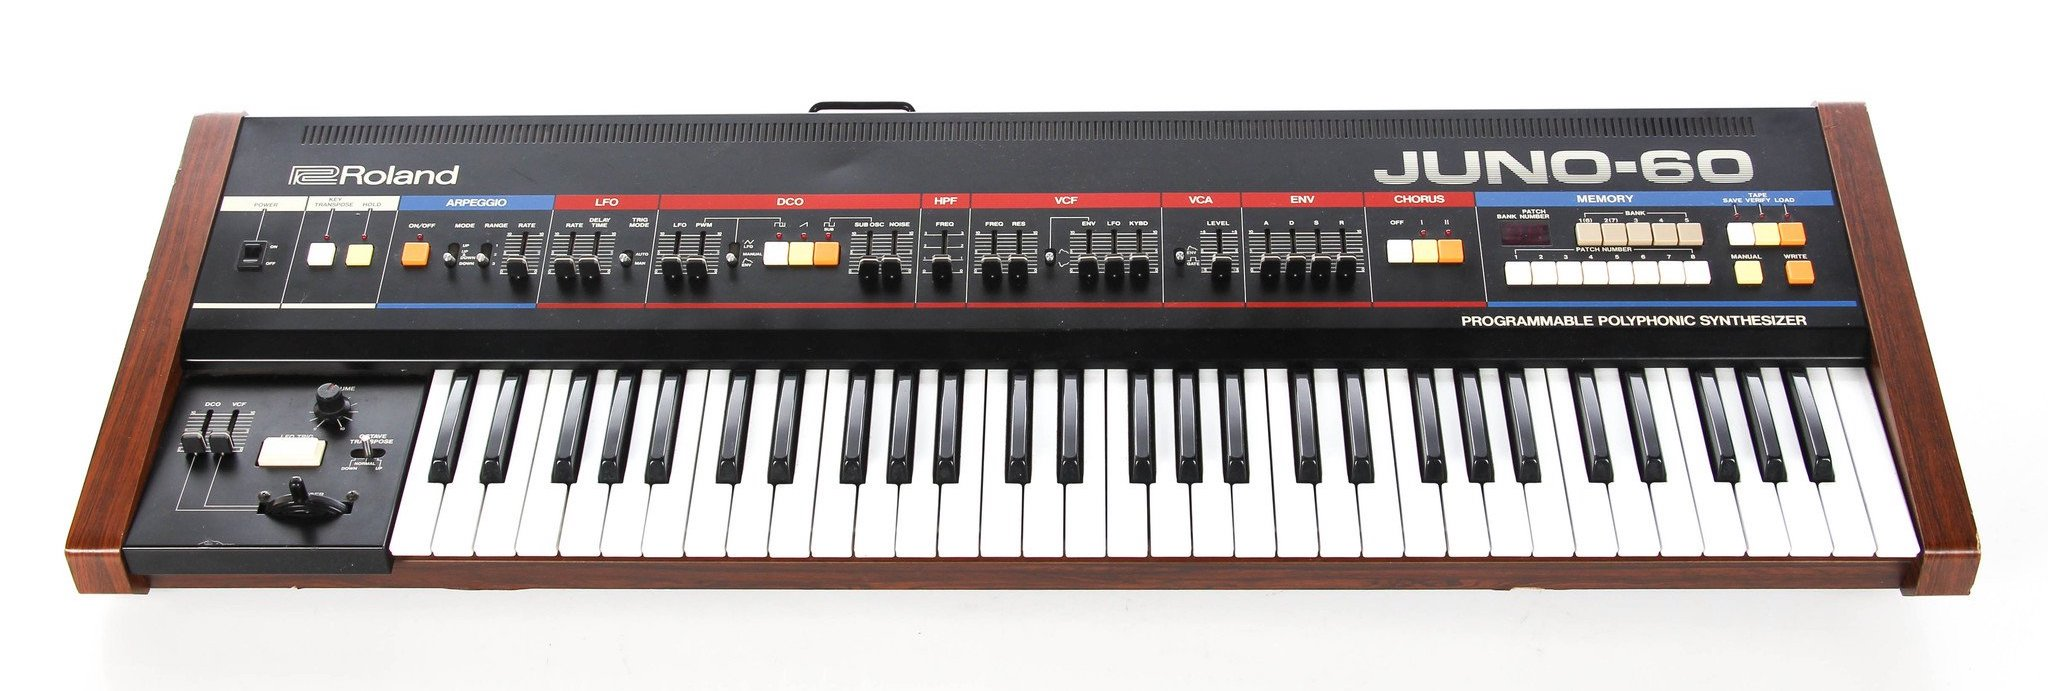 A photo of the Juno-60